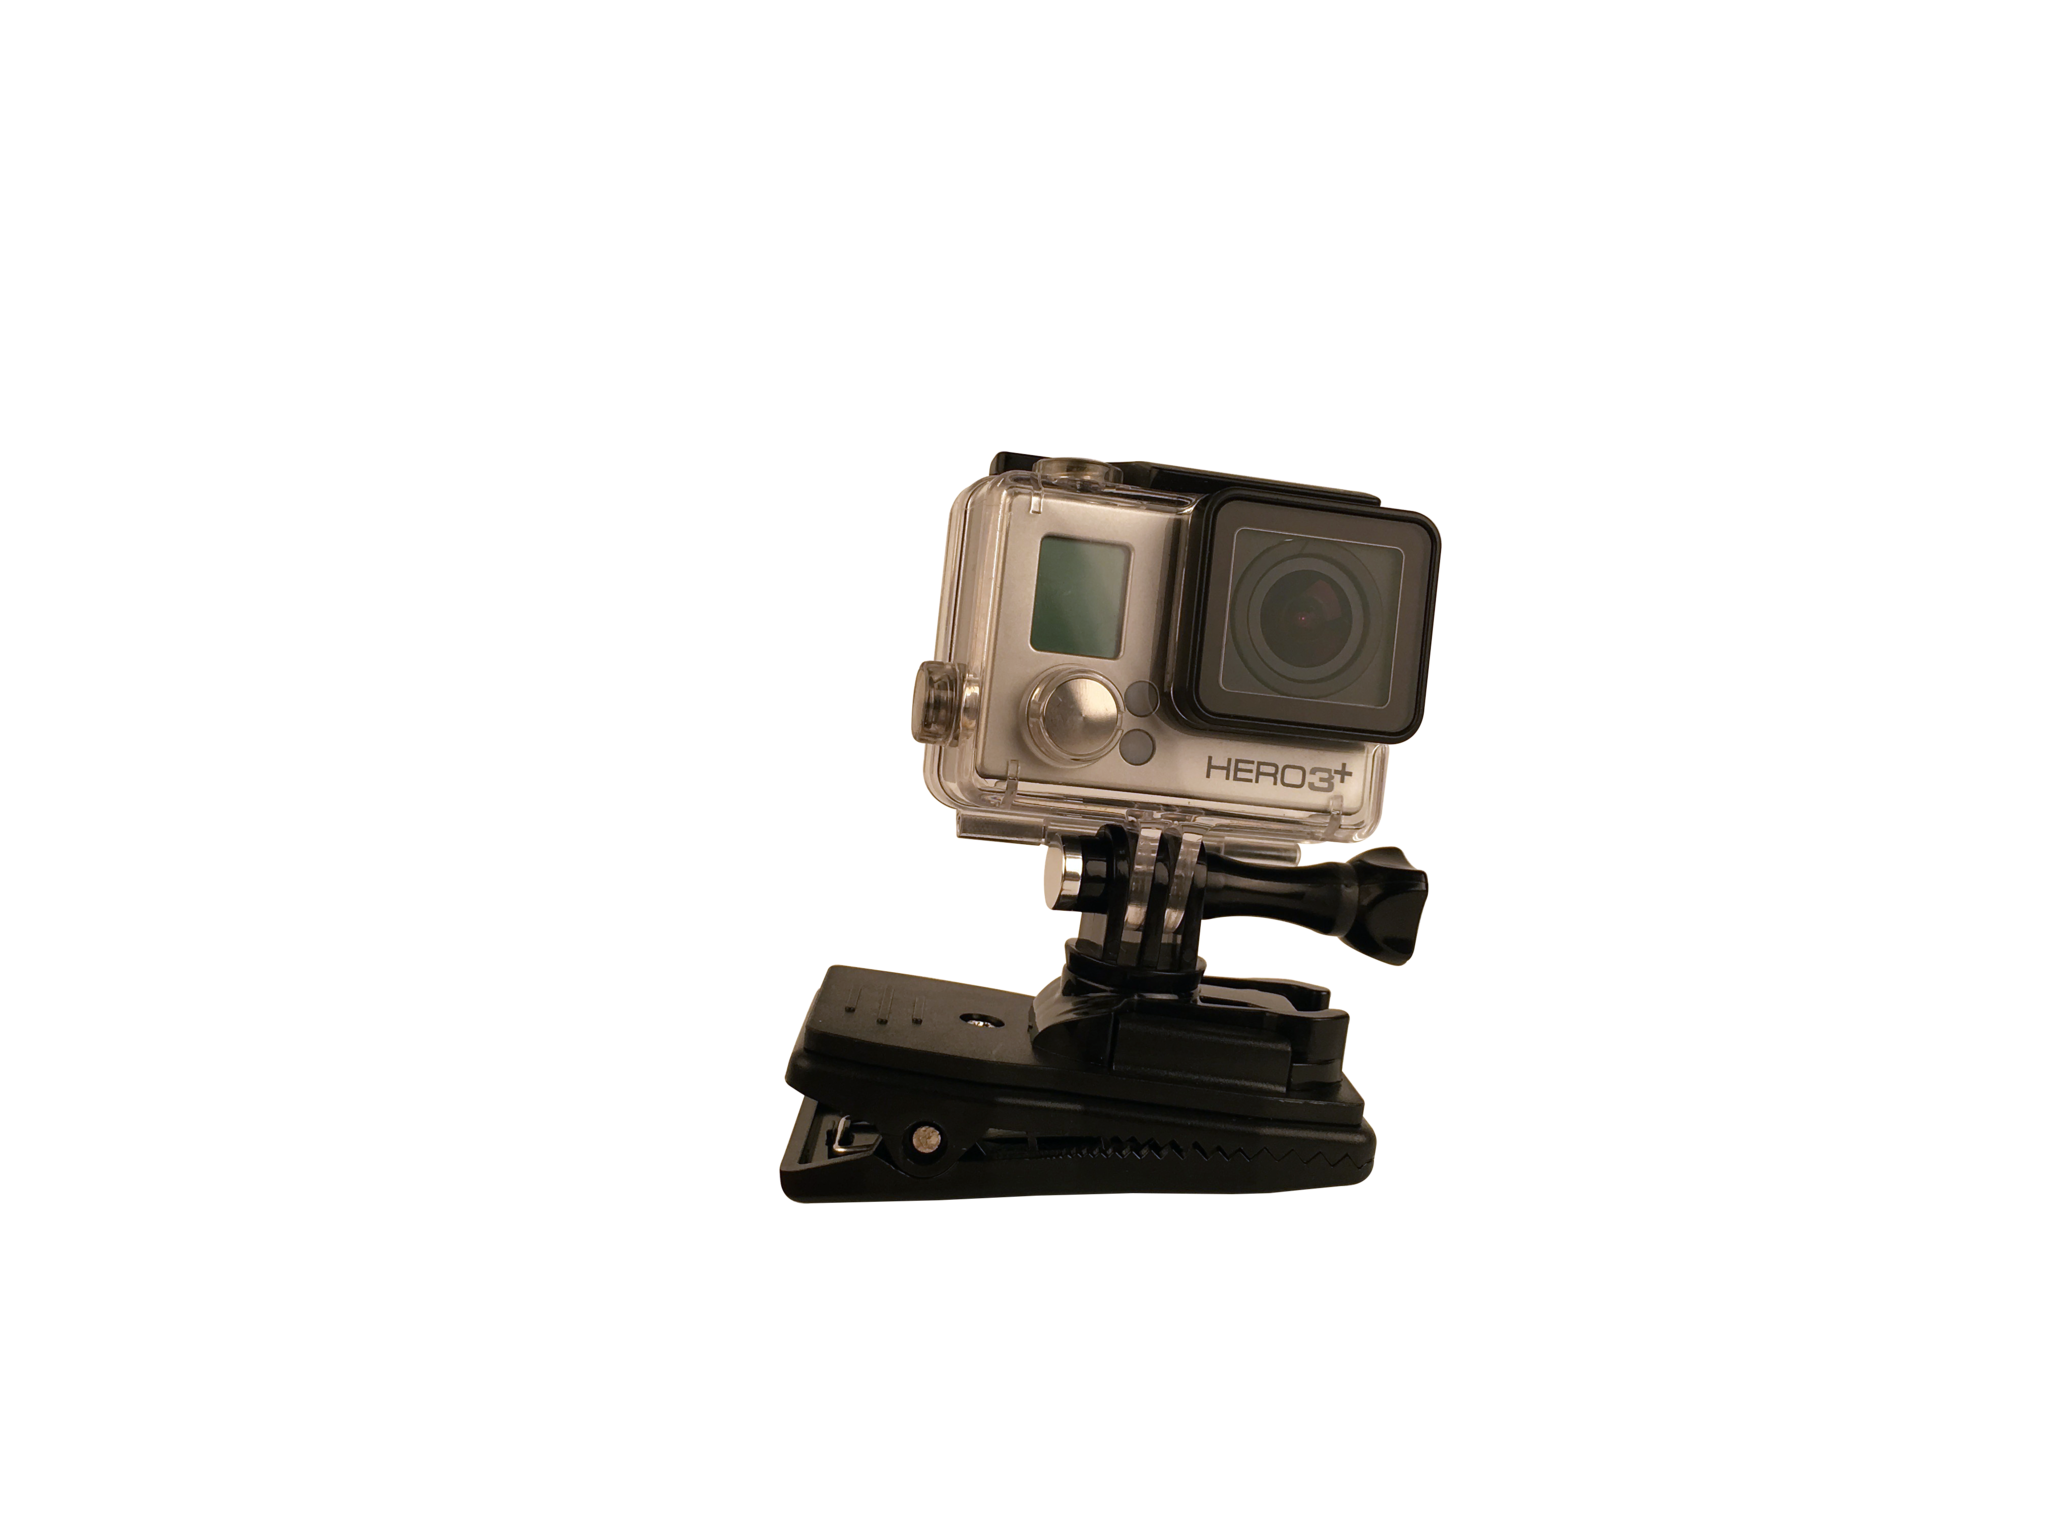 ActionClip Clip-on Mount for GoPro - Hat Mount for GoPro